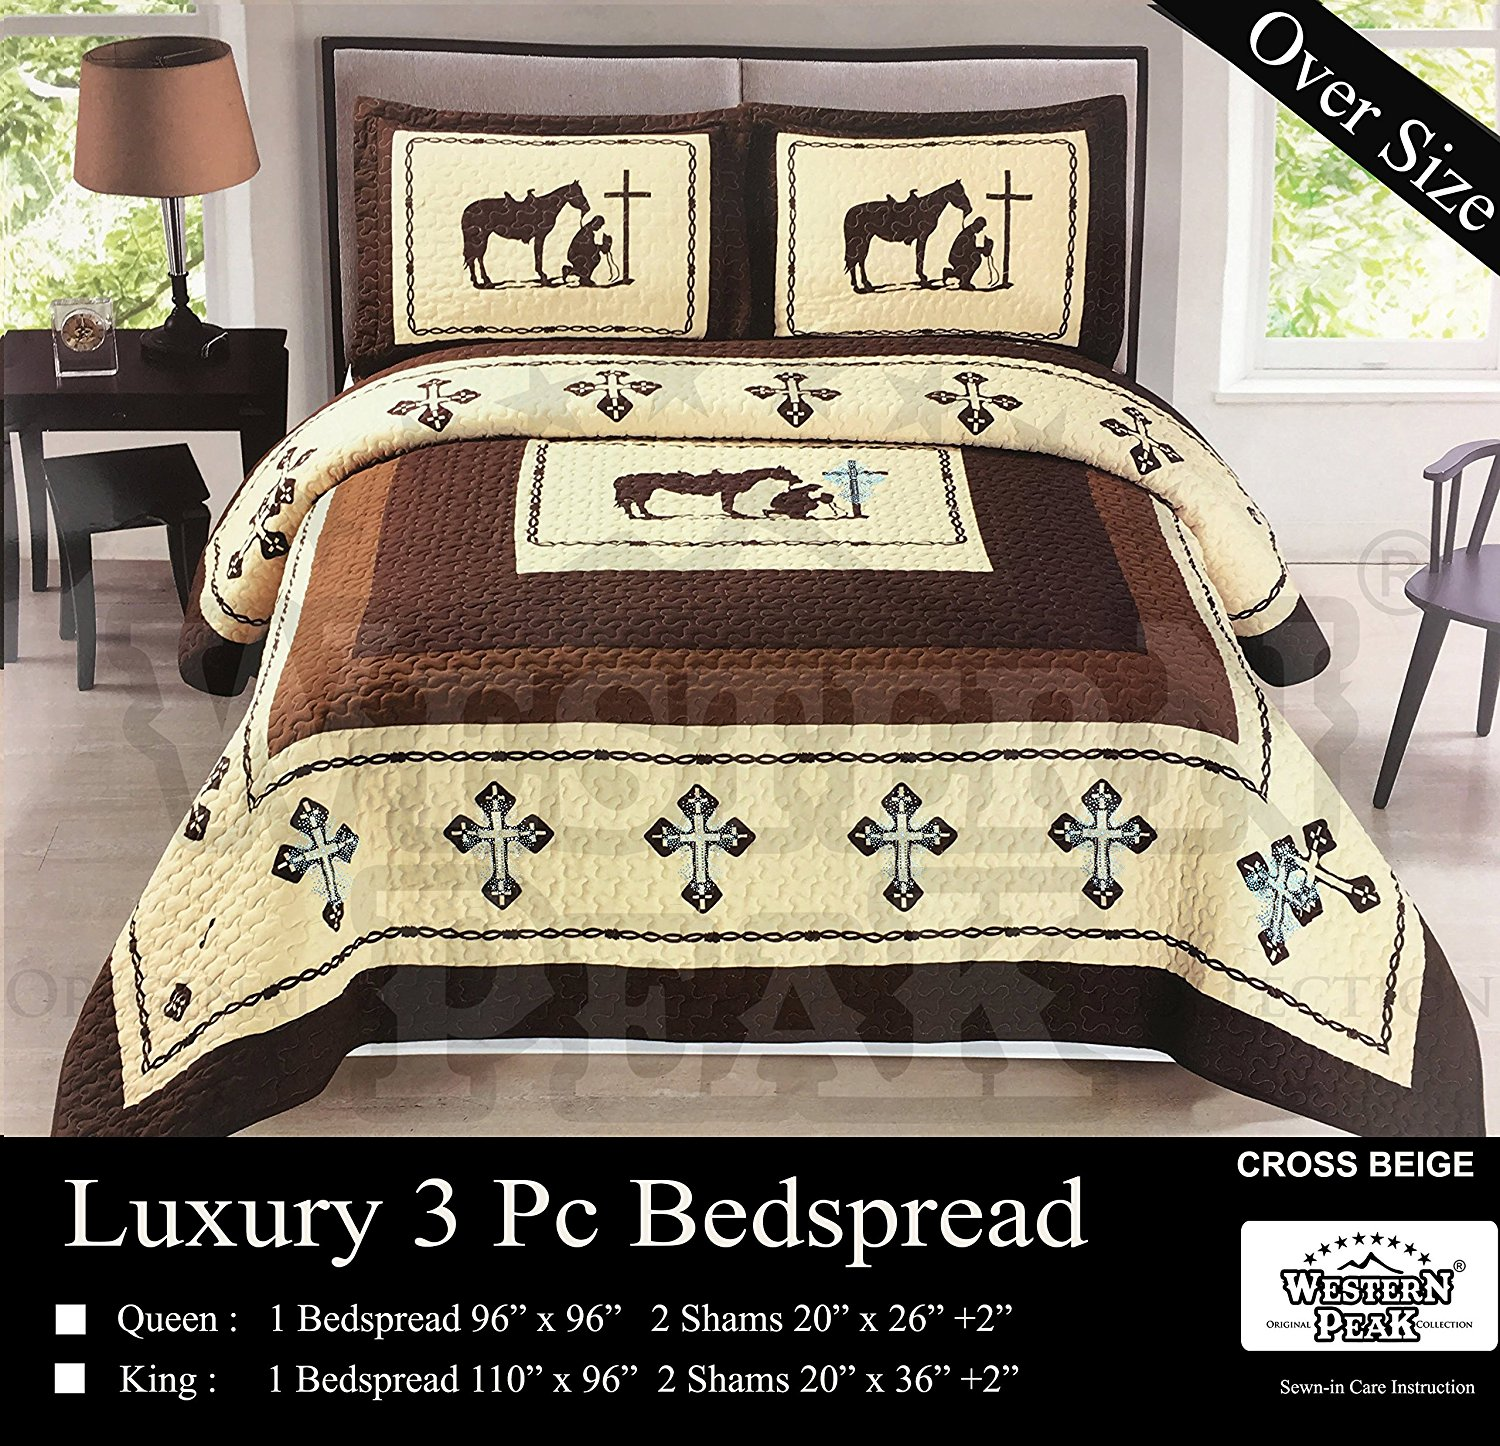 lodge sets bedding your perfect red decoration cabin cabins or comforters for style comforter the is log plaid rooms set our lake